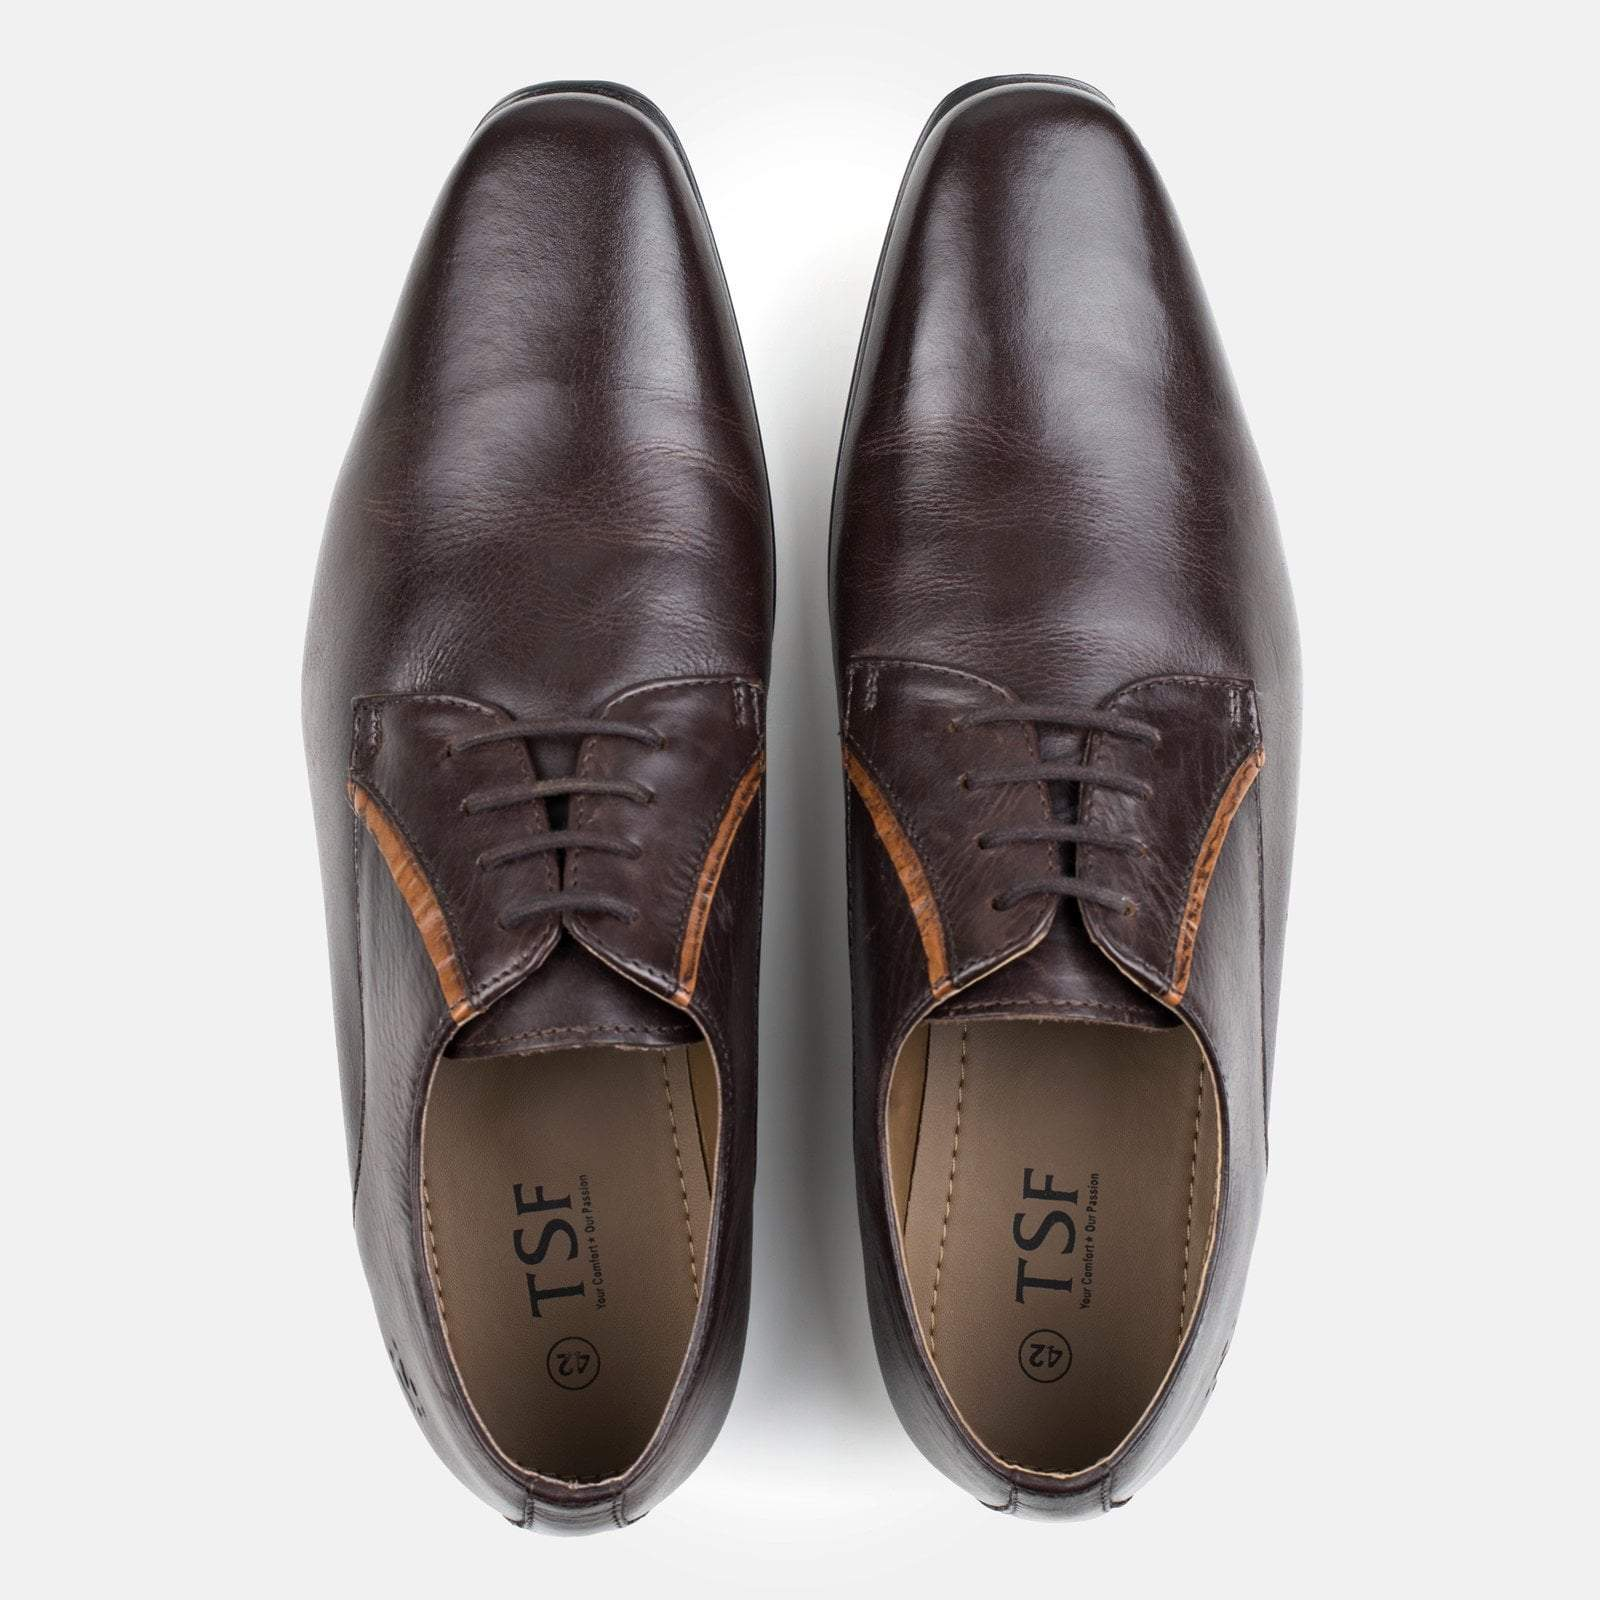 Redfoot Shoes Footwear UK 6 / EURO 39 / US 7 / Brown / Leather BOND BROWN